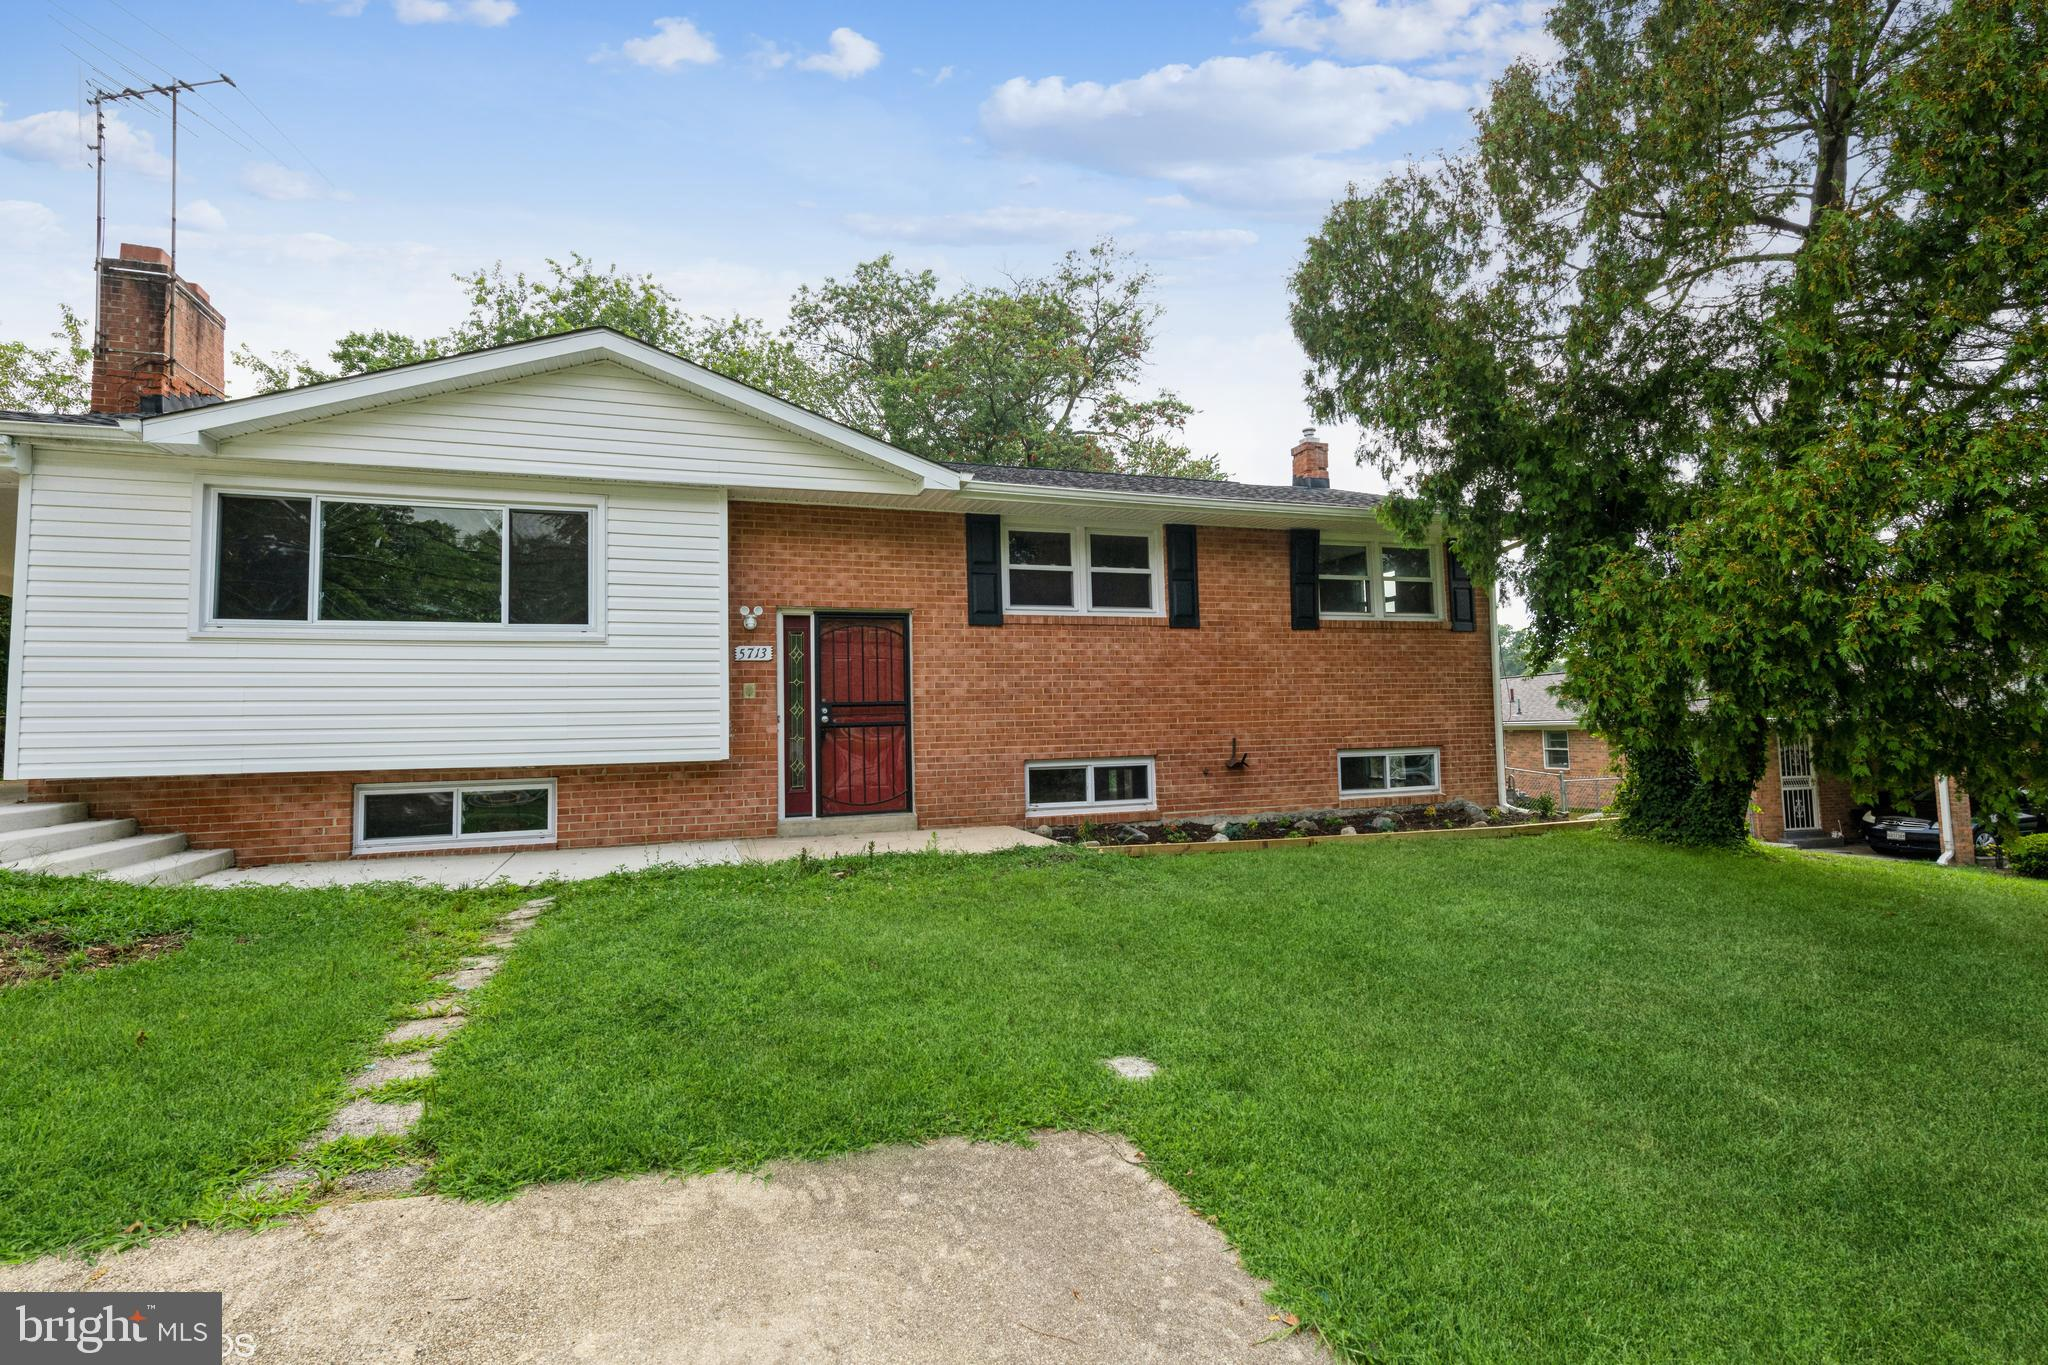 The property is an all Brick split foyer with 2 fireplaces 3 bedrooms, 2.5 bathrooms and unfinished